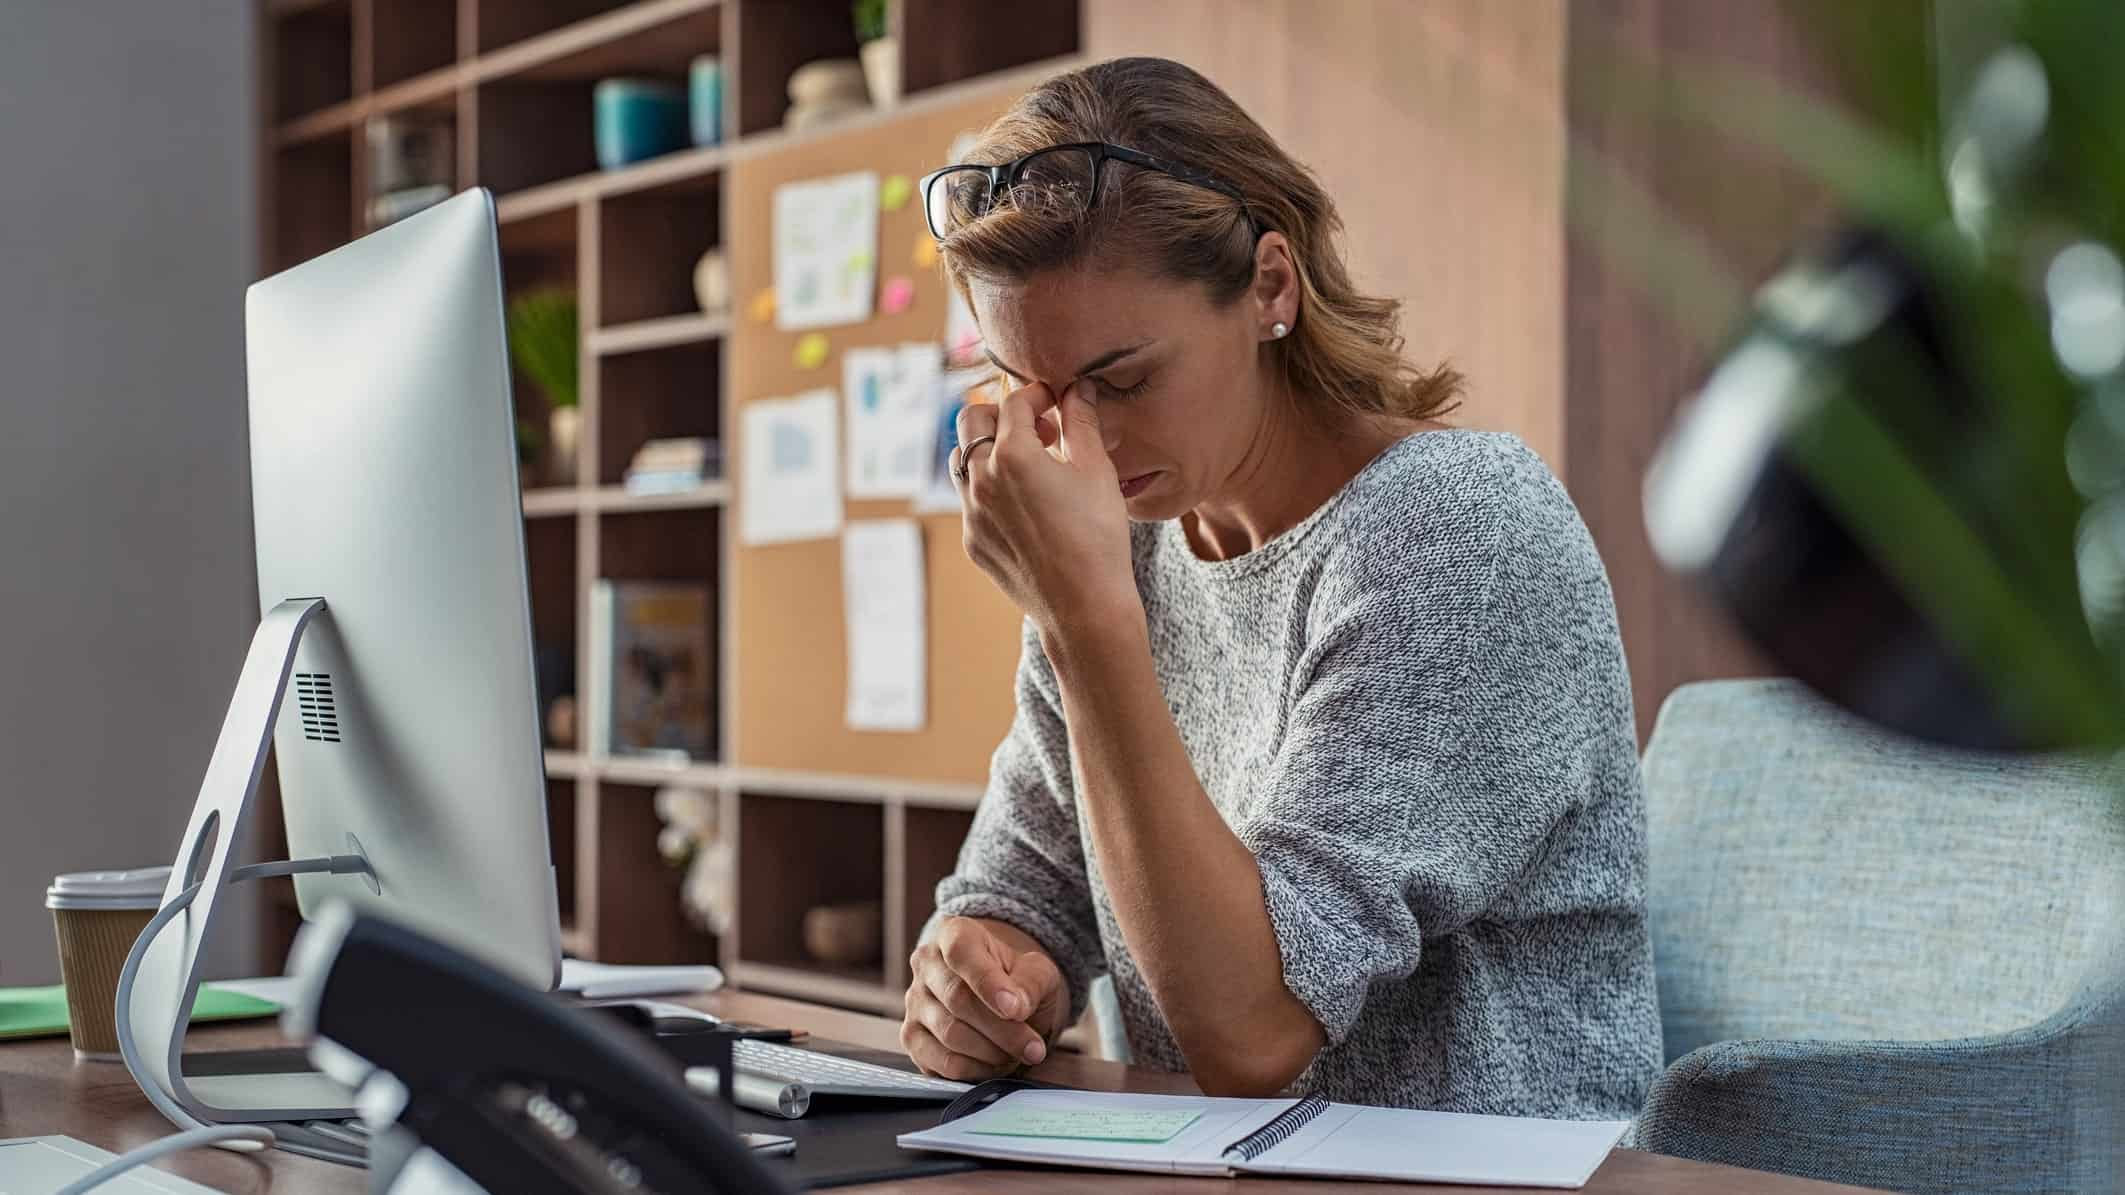 Female investor in front of computer with hands at forehead